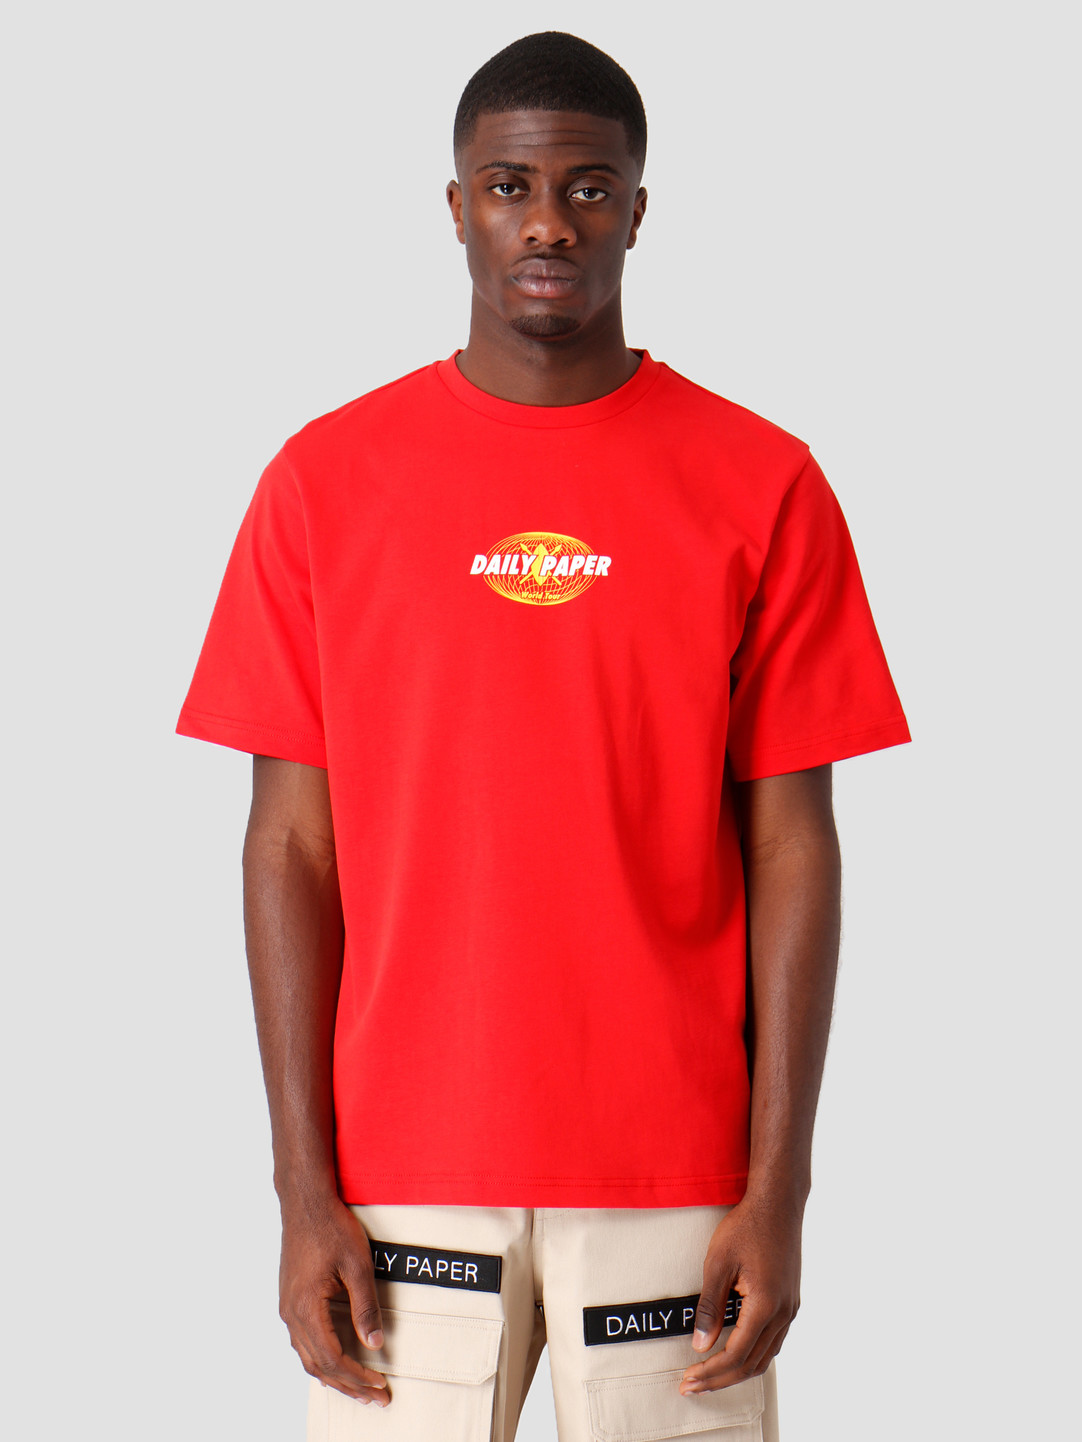 Daily Paper Daily Paper World Tour T-shirt Red 19SR1TS02-03